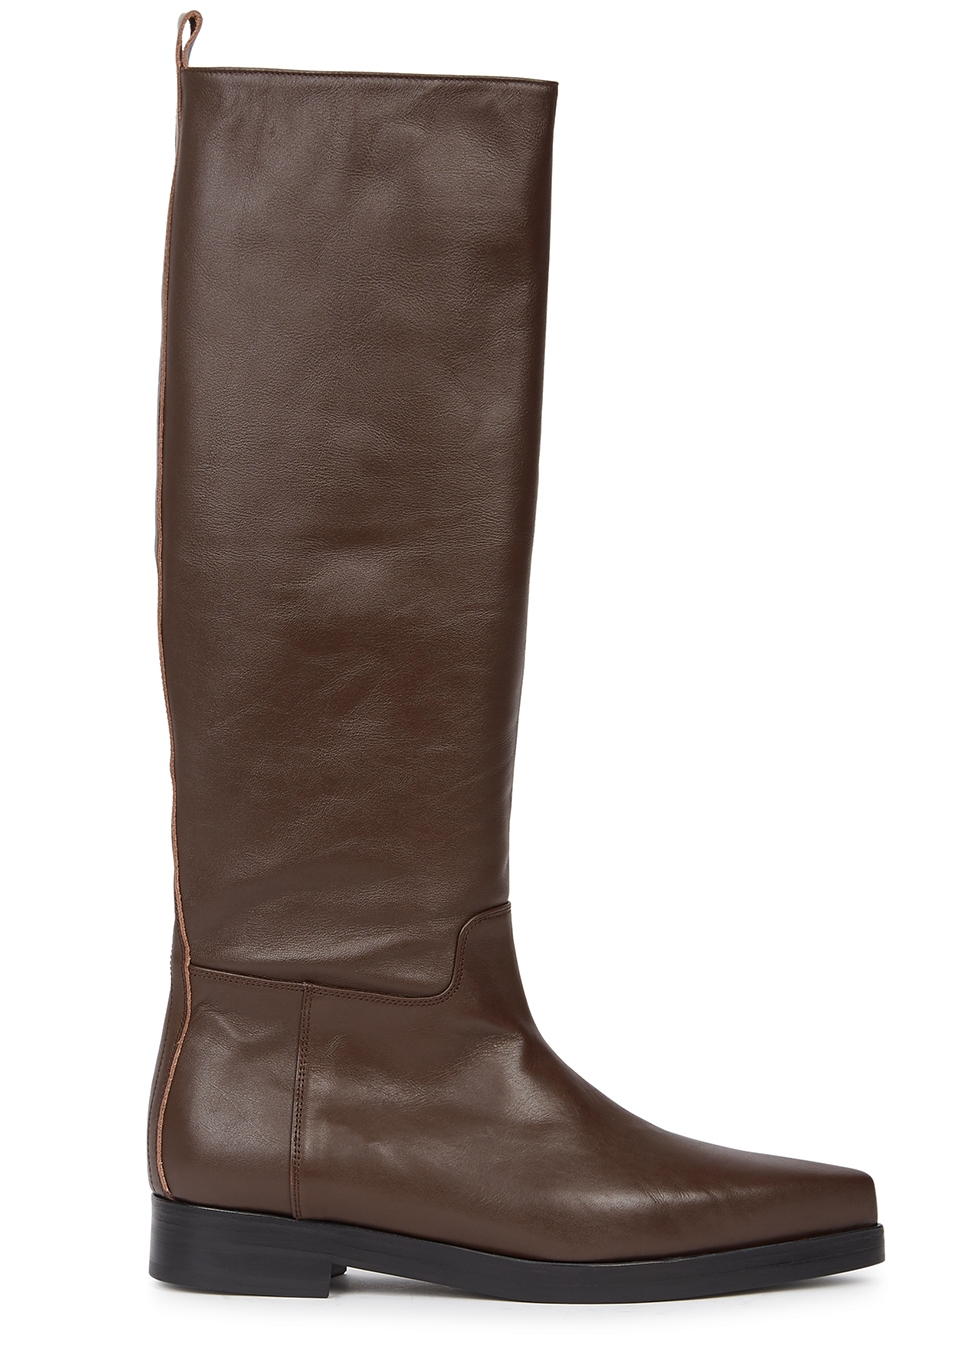 Western brown leather knee-high boots